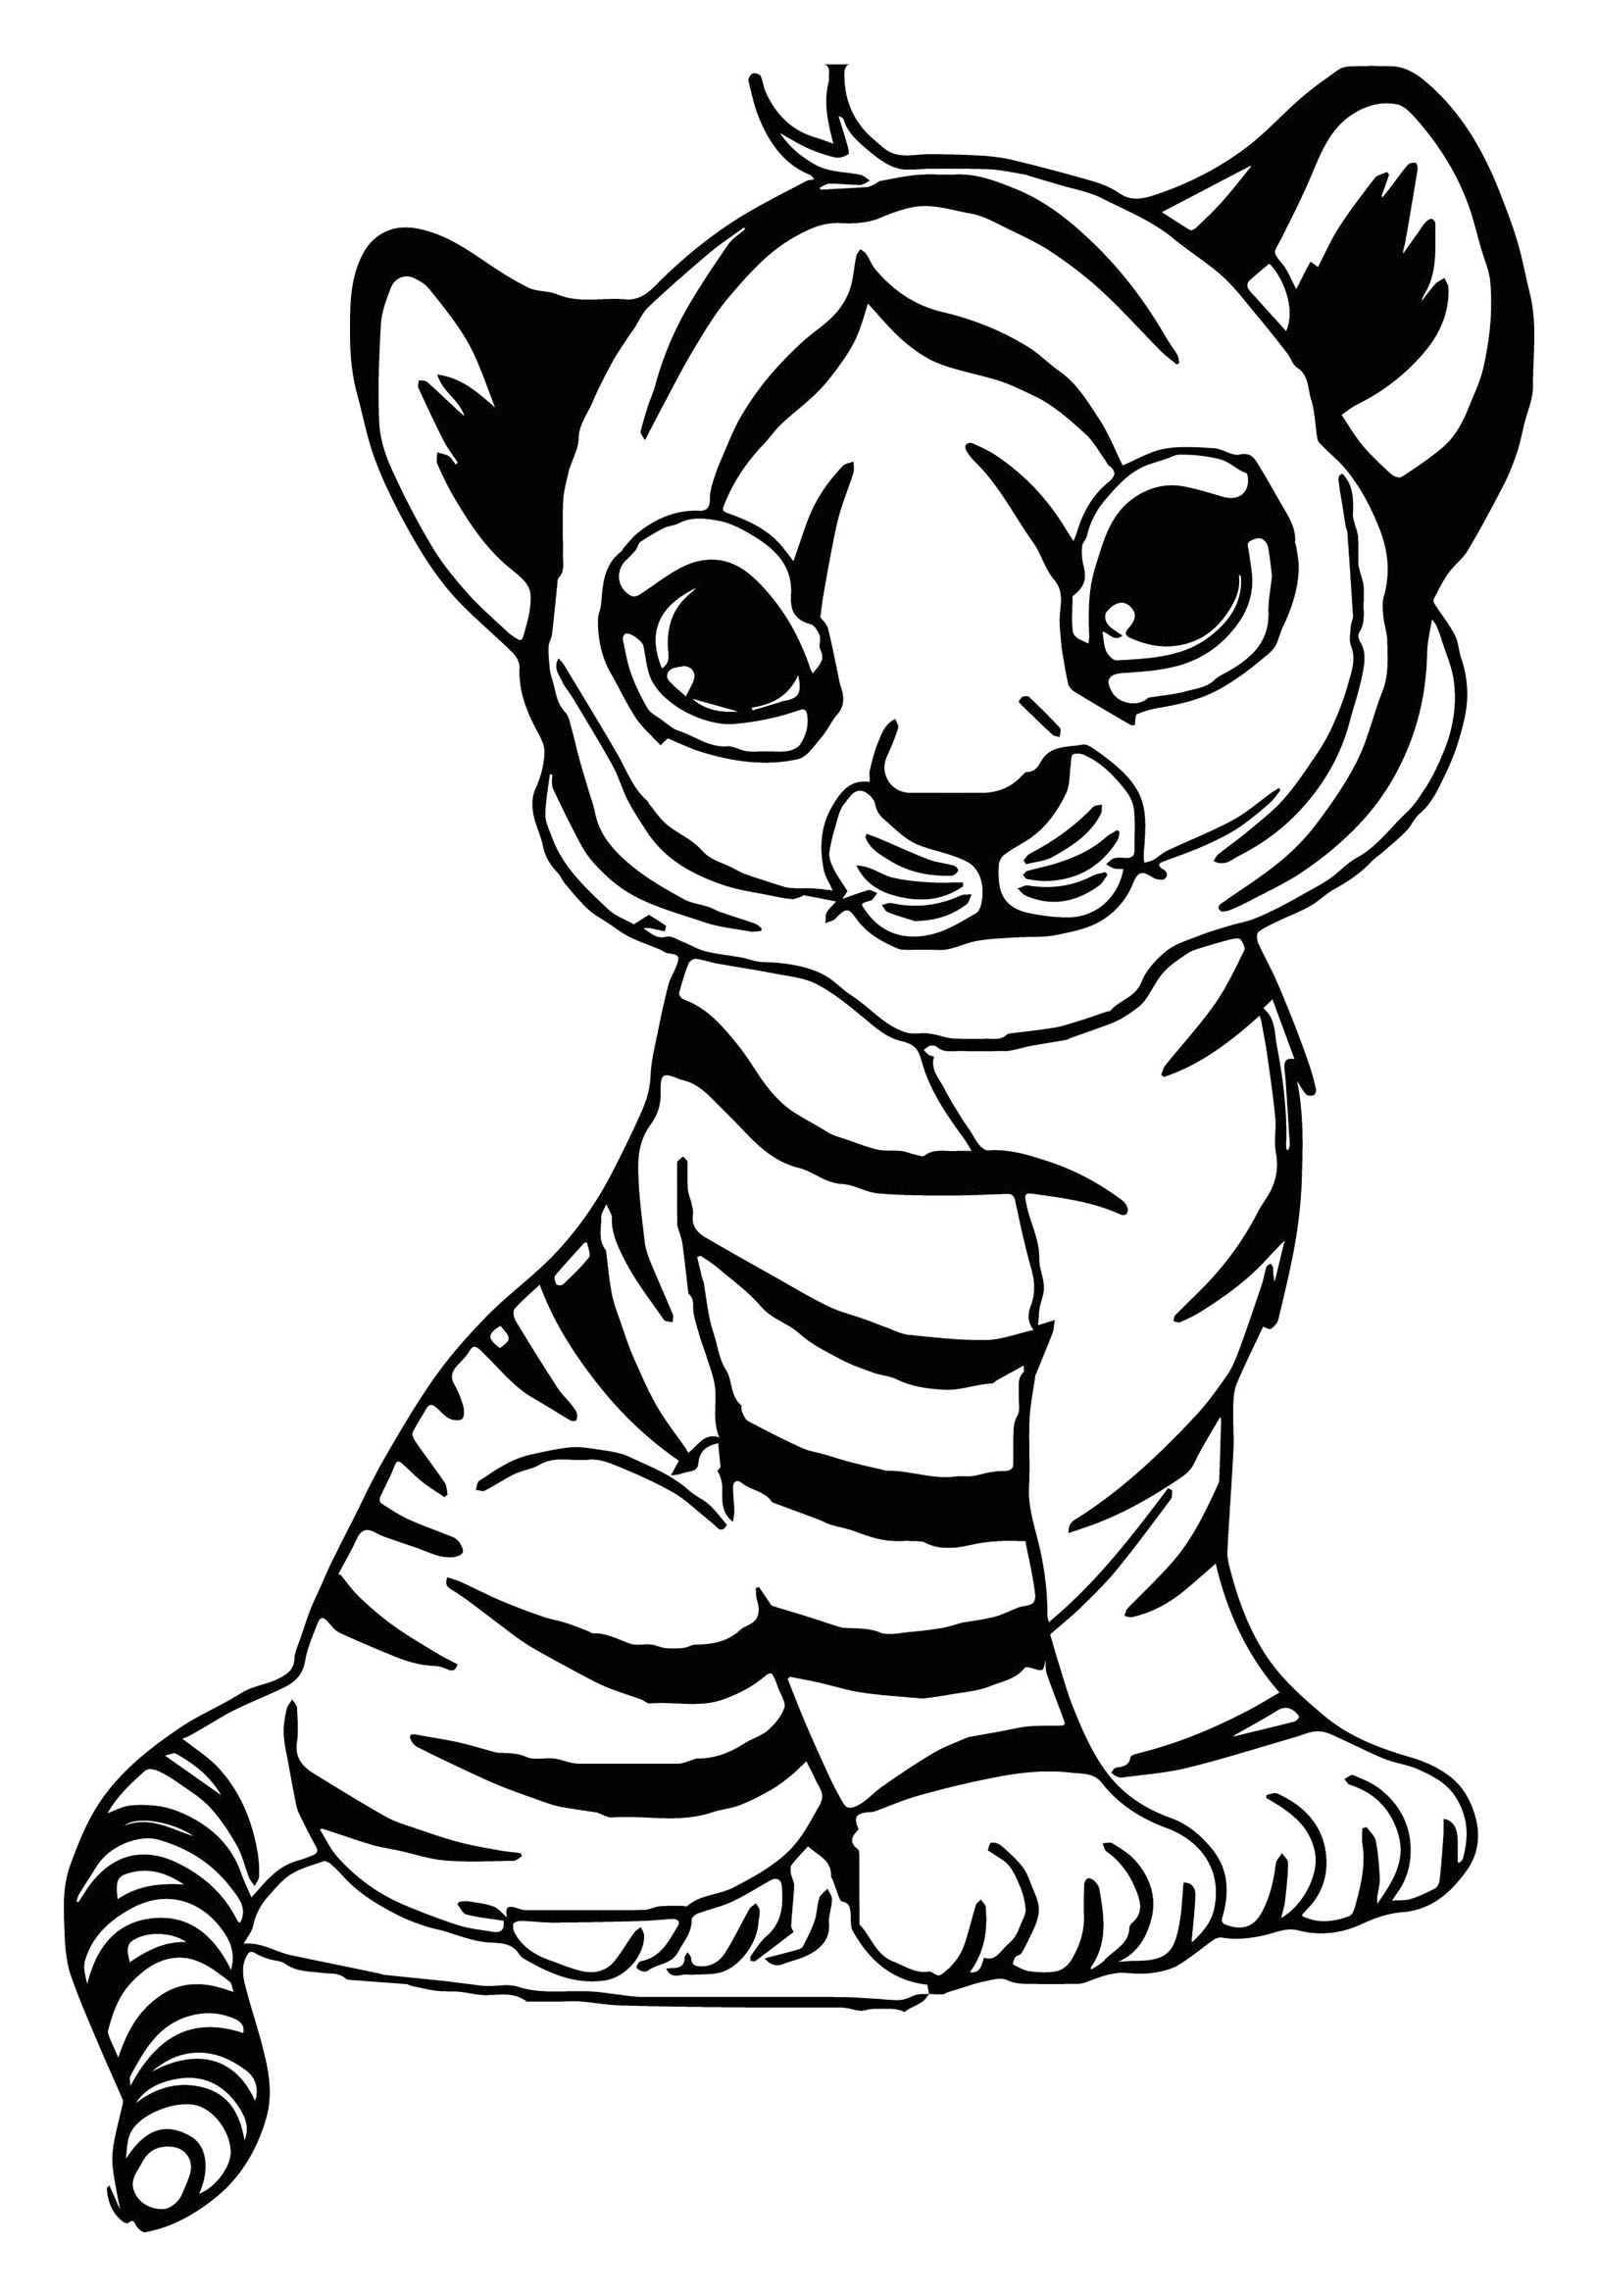 coloring images of animals tigers to print for free tigers kids coloring pages coloring animals of images